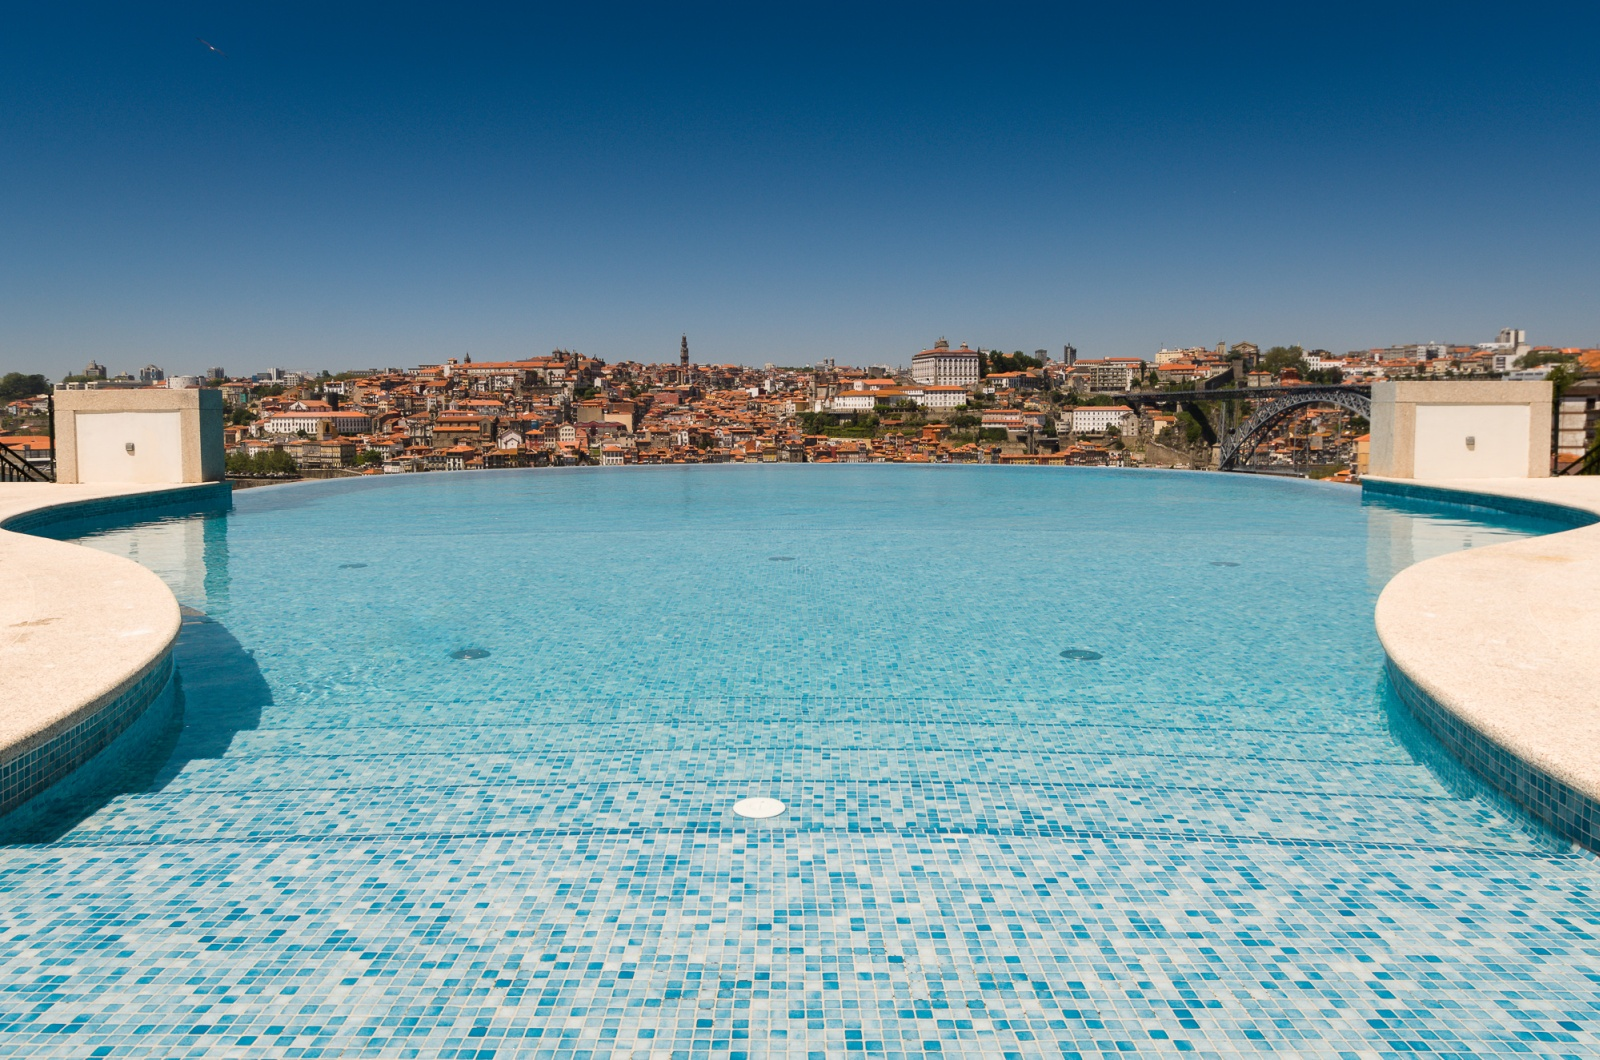 The yeatman hotel - 4 star hotels in lisbon with swimming pool ...